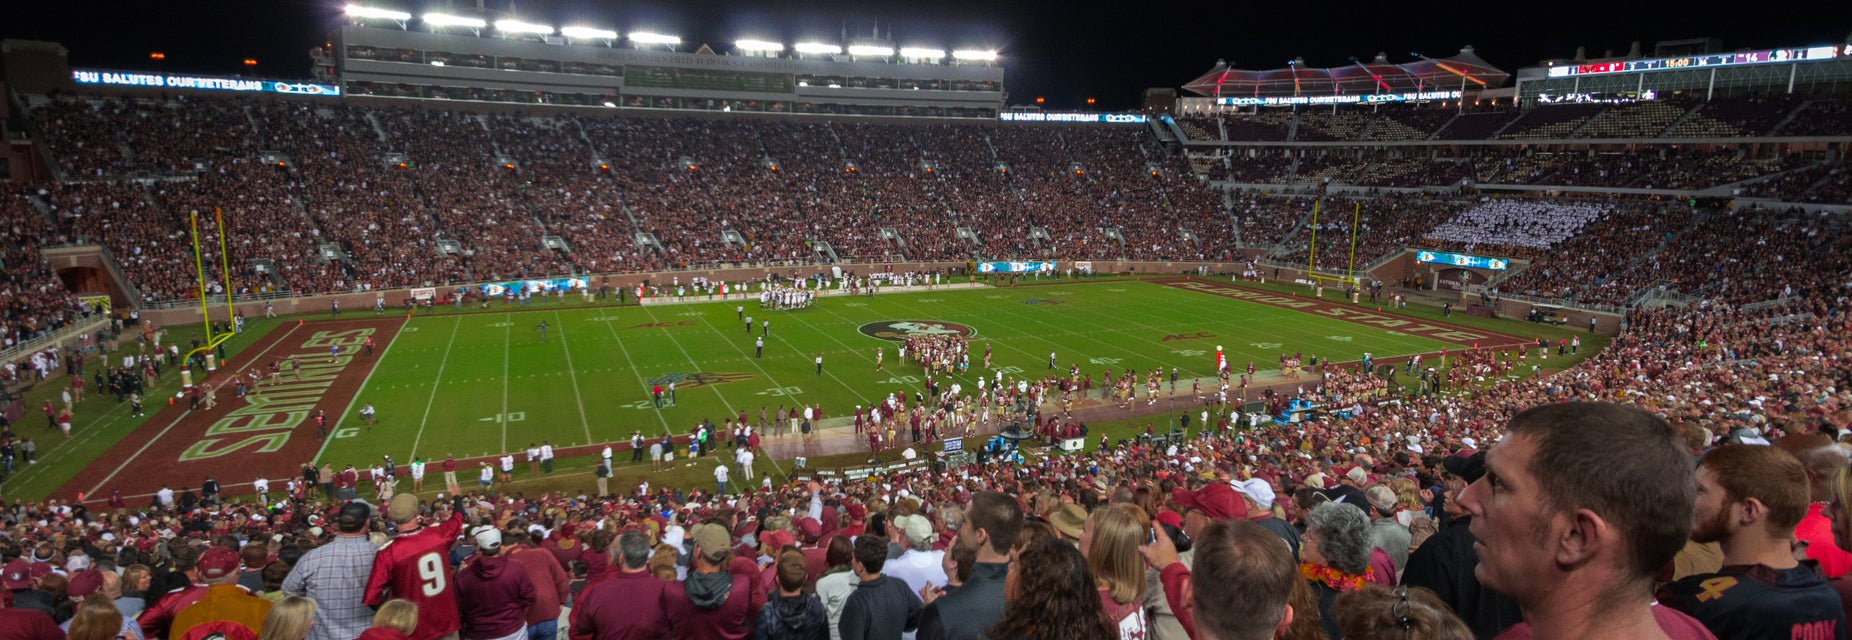 Seat view from West Stands